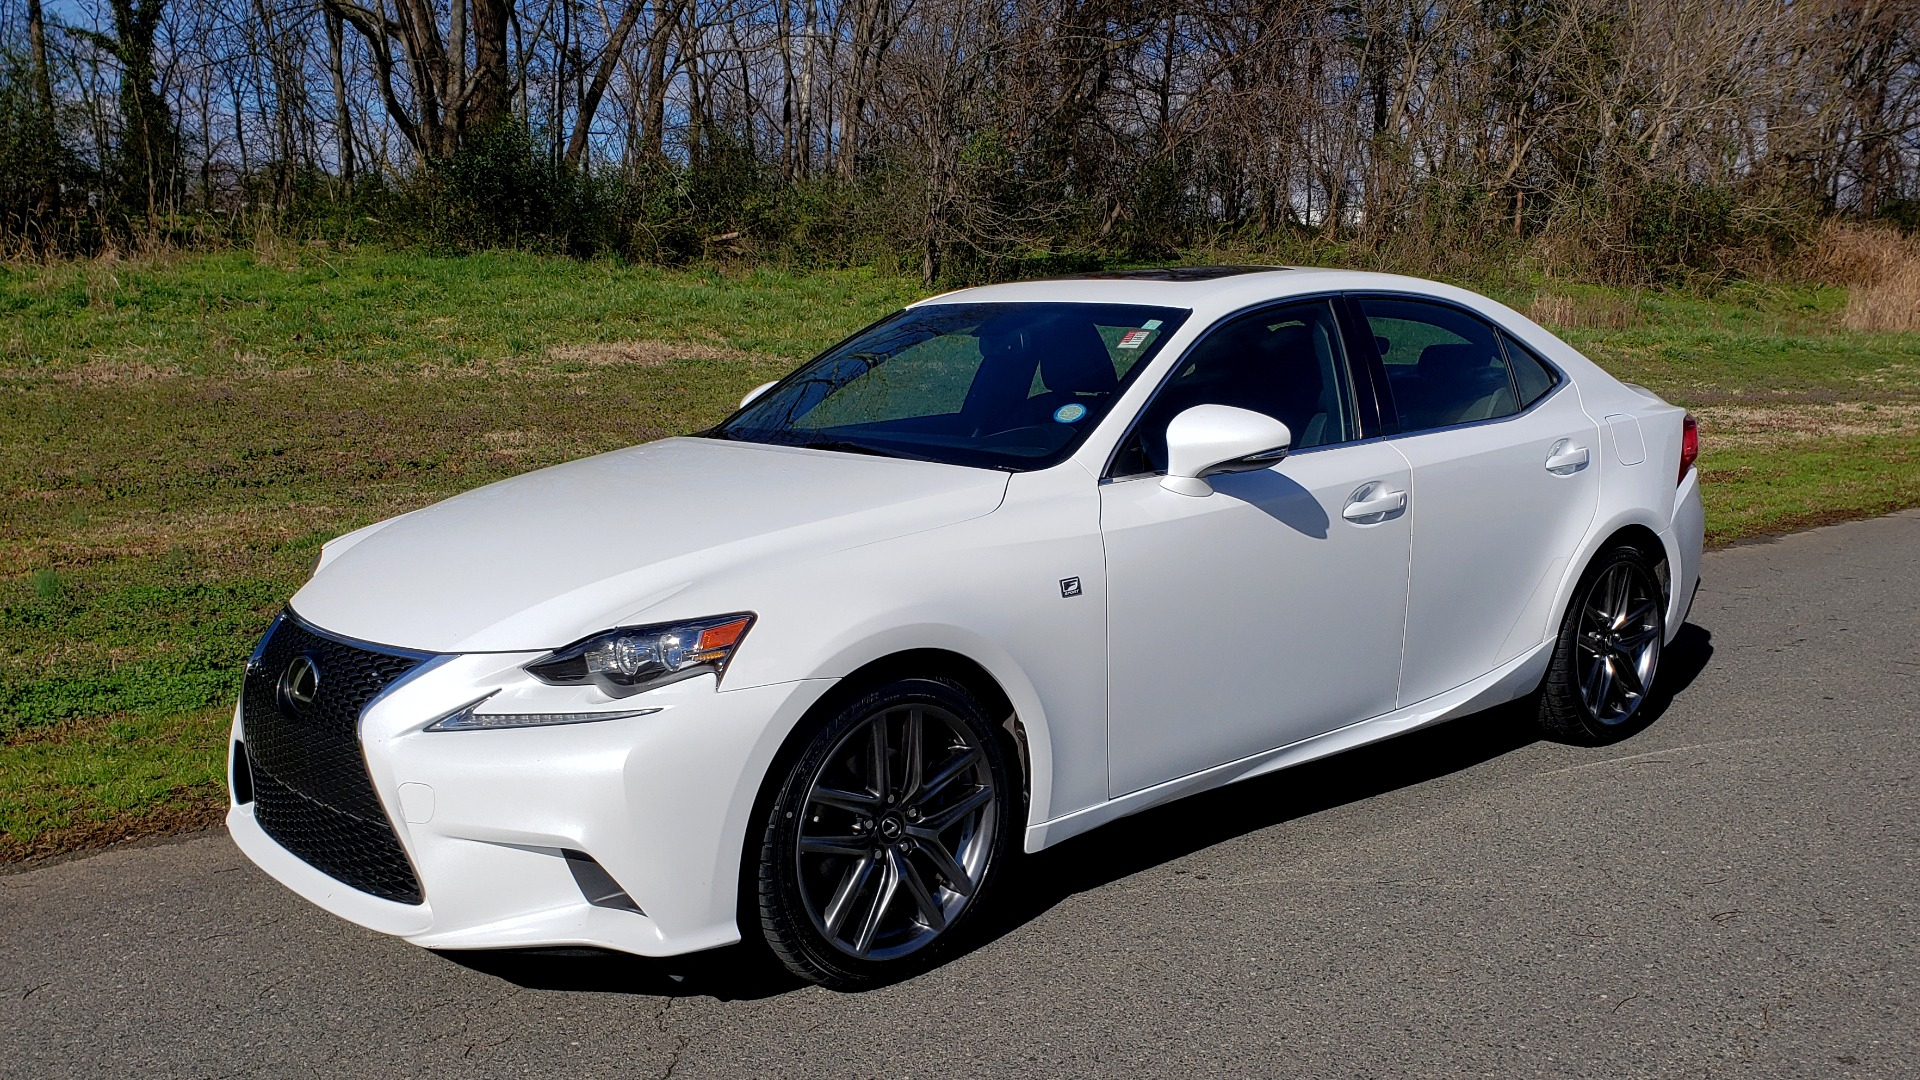 Used 2014 Lexus IS 250 F-SPORT / NAV / SUNROOF / REARVIEW / BSM for sale Sold at Formula Imports in Charlotte NC 28227 1